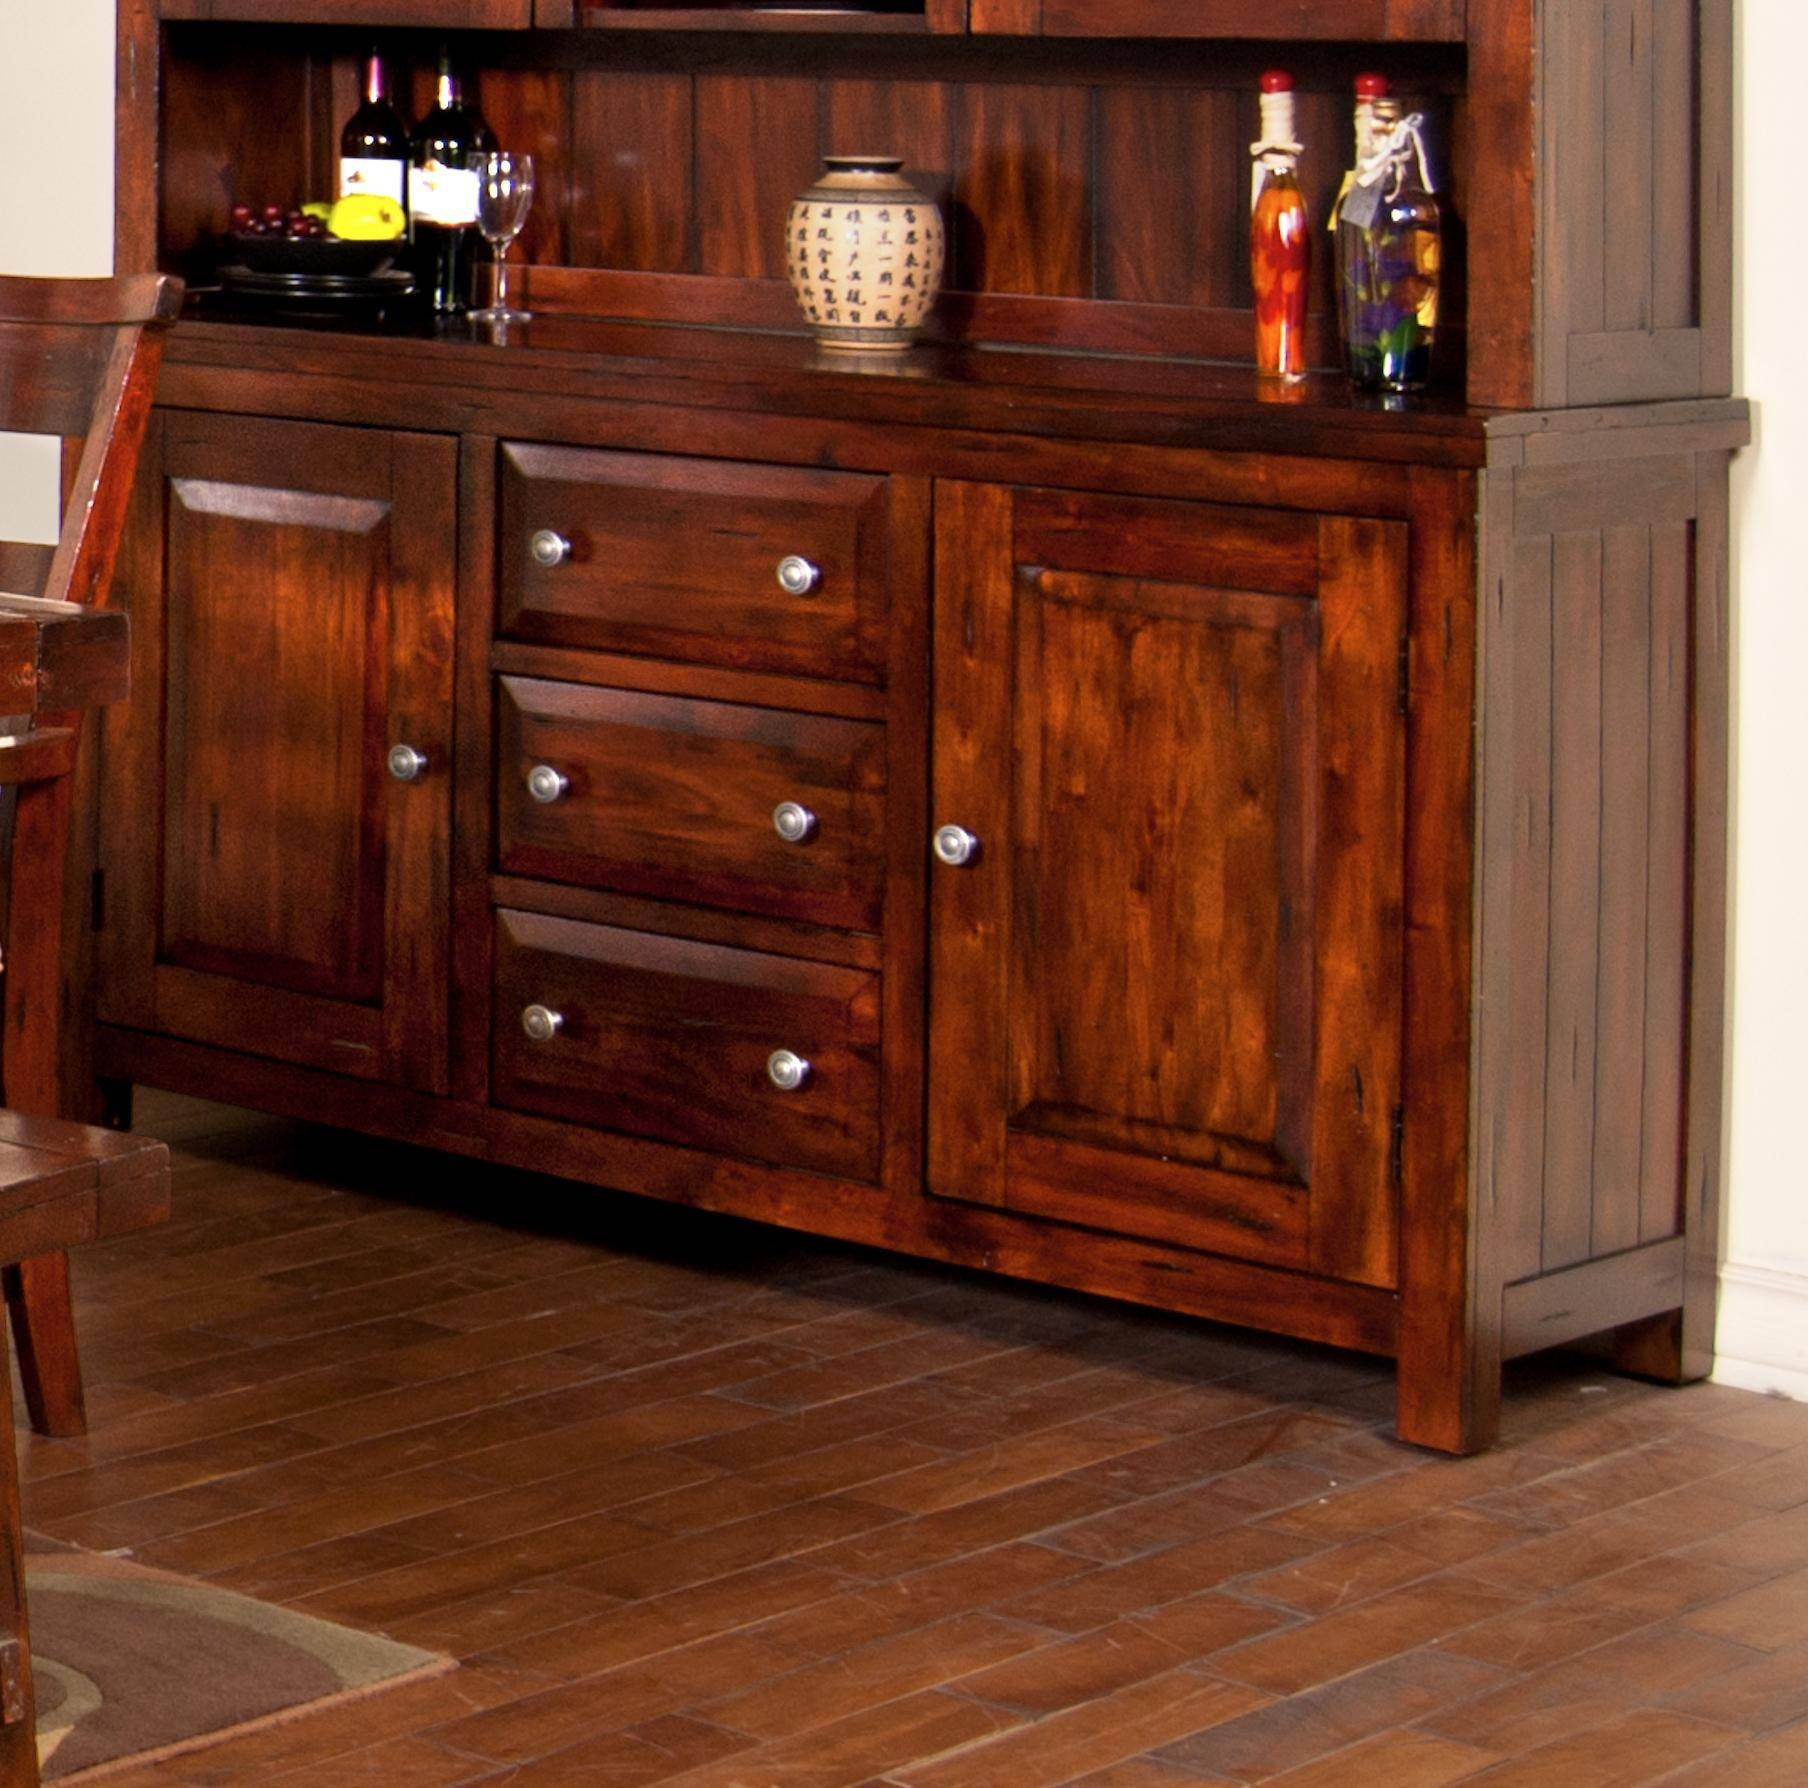 Sideboards. Astounding Narrow Sideboards And Buffets: Narrow throughout Country Sideboards (Image 15 of 30)